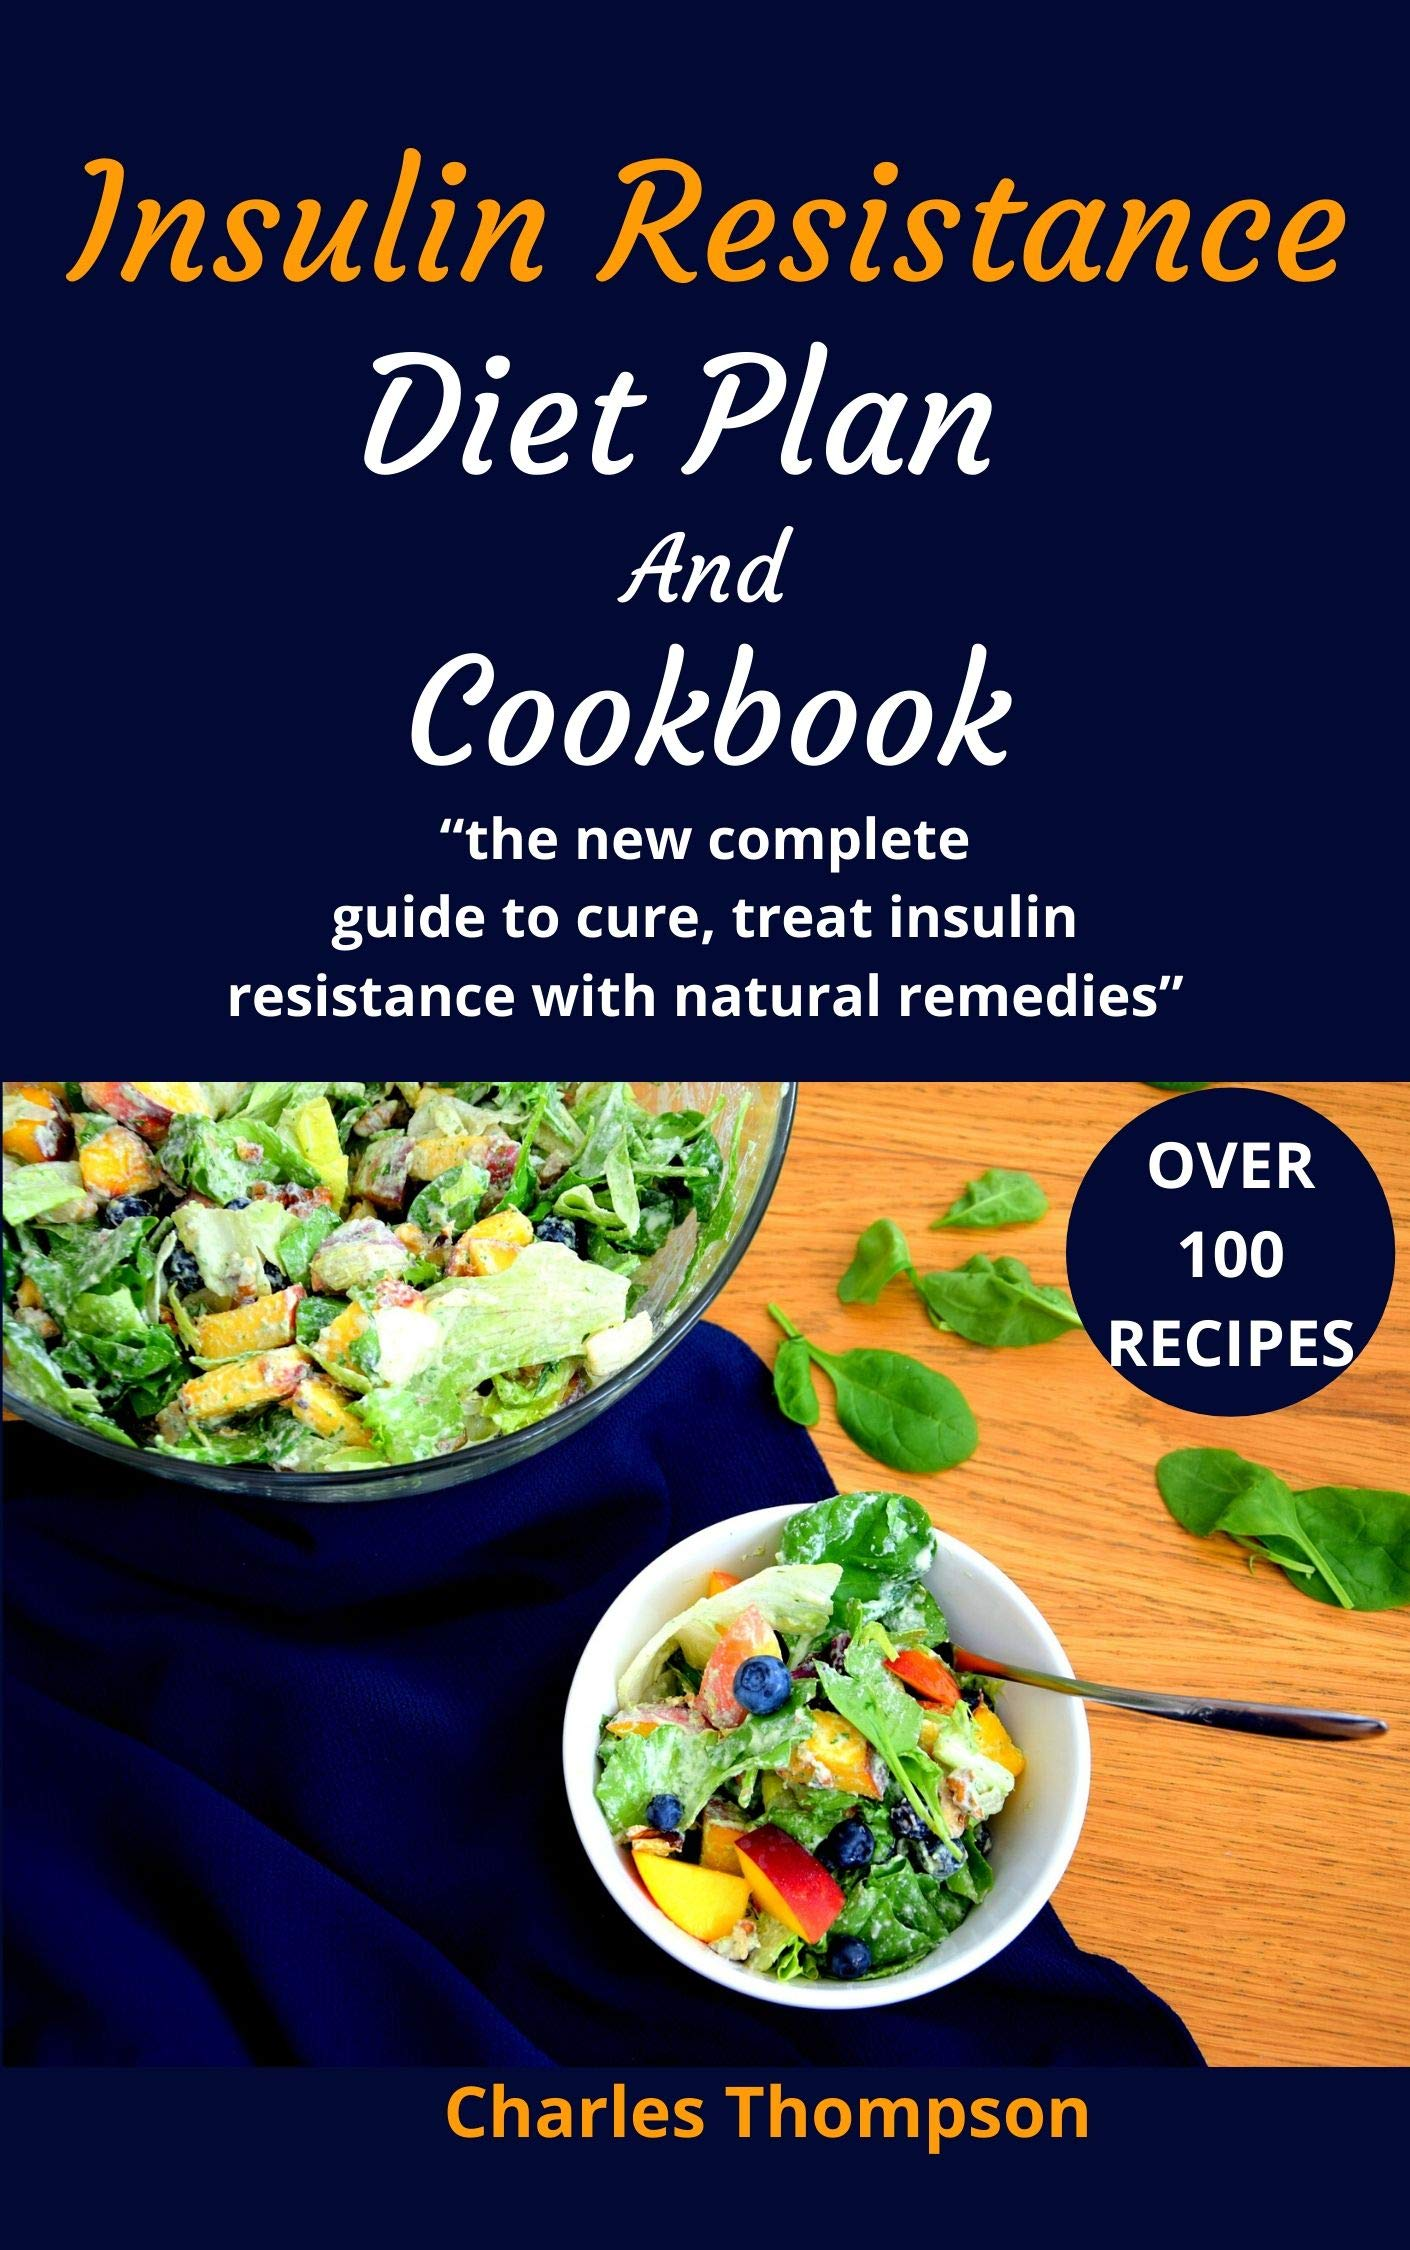 Insulin Resistance Diet Plan And Cookbook: the new complete guide to cure, treat insulin resistance with natural remedies. Lose Weight, Manage PCOS, and Prevent diabetes..